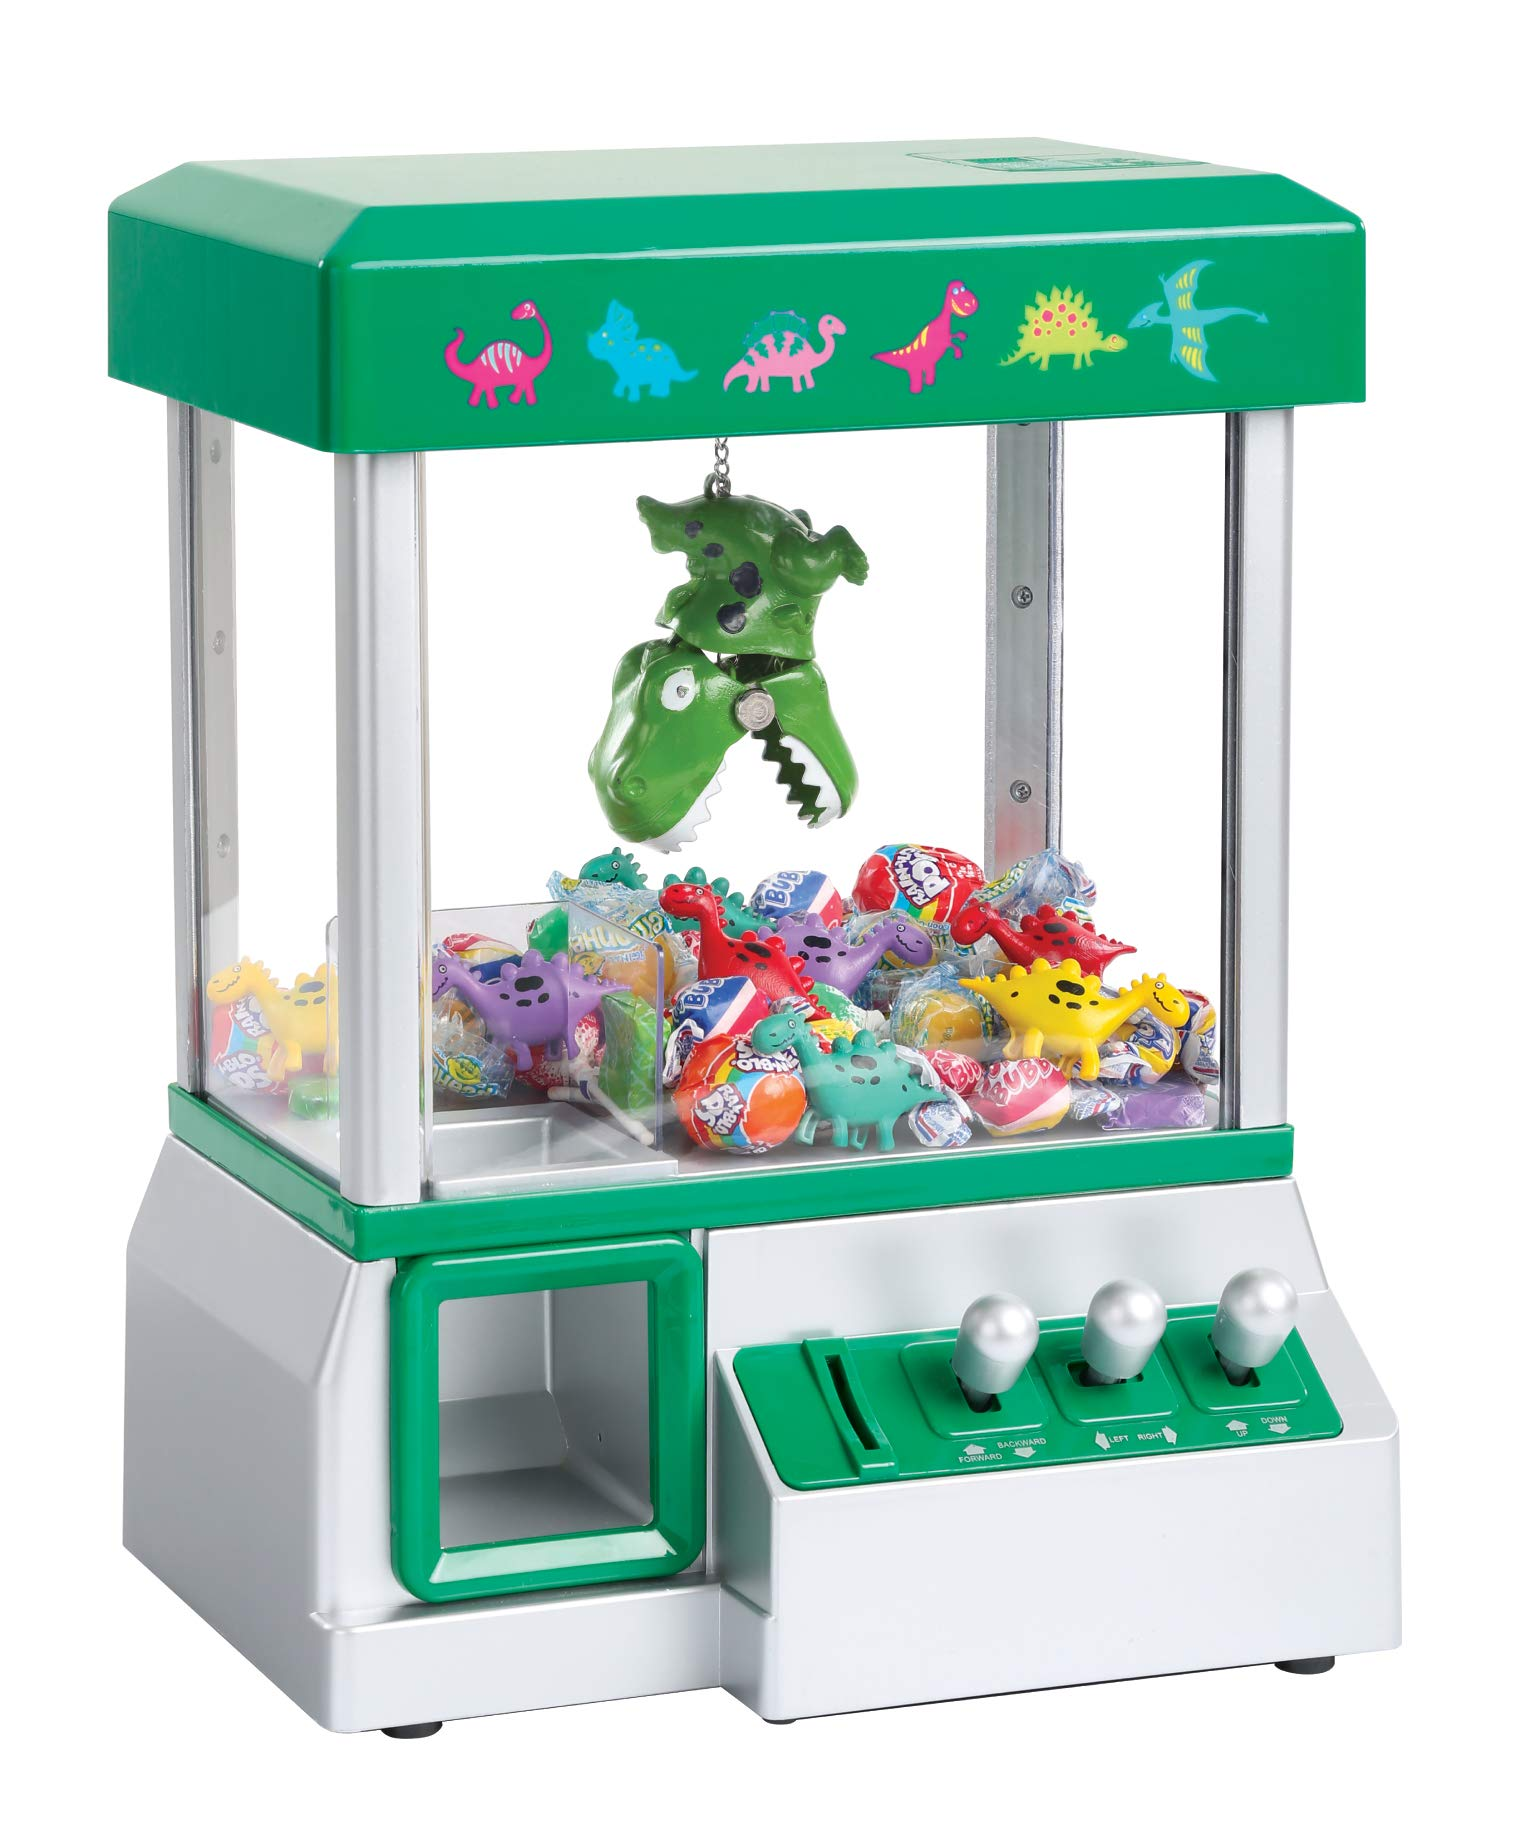 Claw Machine - Arcade Mini Toy Grabber Machine for Kids - Candy Machine- Retro Carnvial Music & Flashing Lights- Best Birthday Gift Game. Use Gumballs, Candy, Toys, or Small Prizes (Green) by Define Essentials